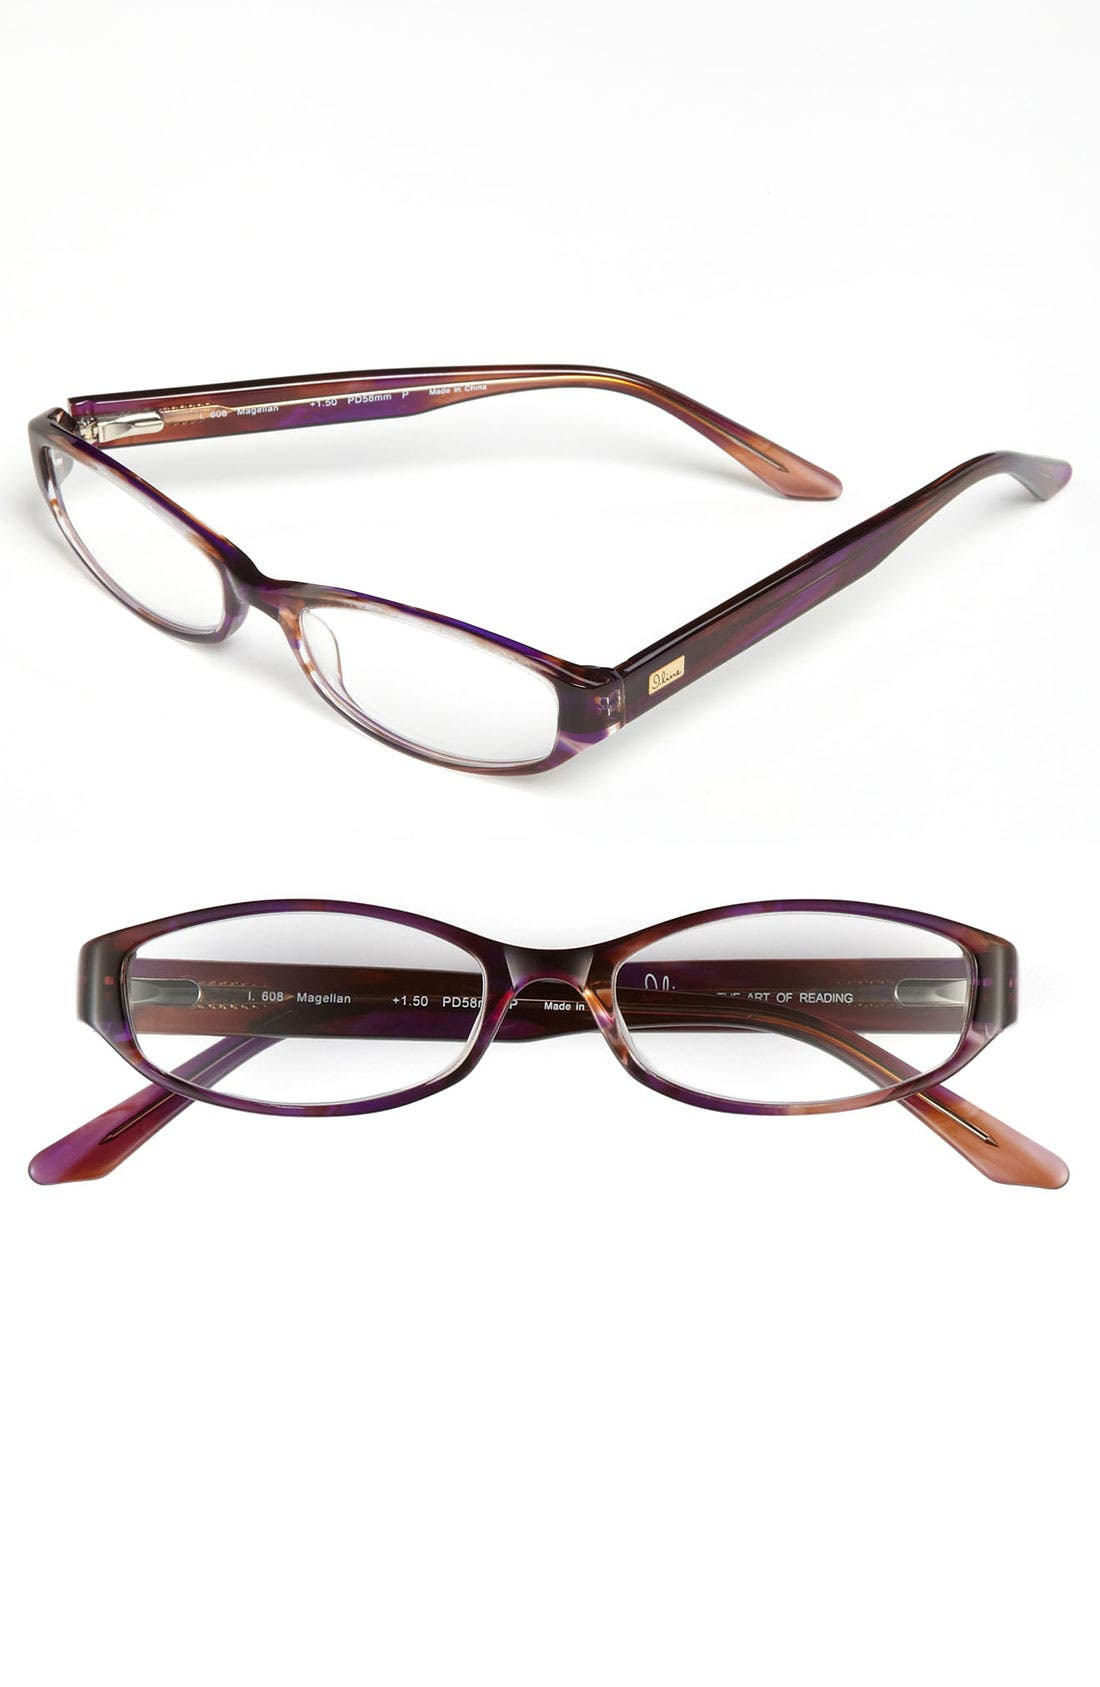 Main Image - I Line Eyewear 'Magellan' Reading Glasses